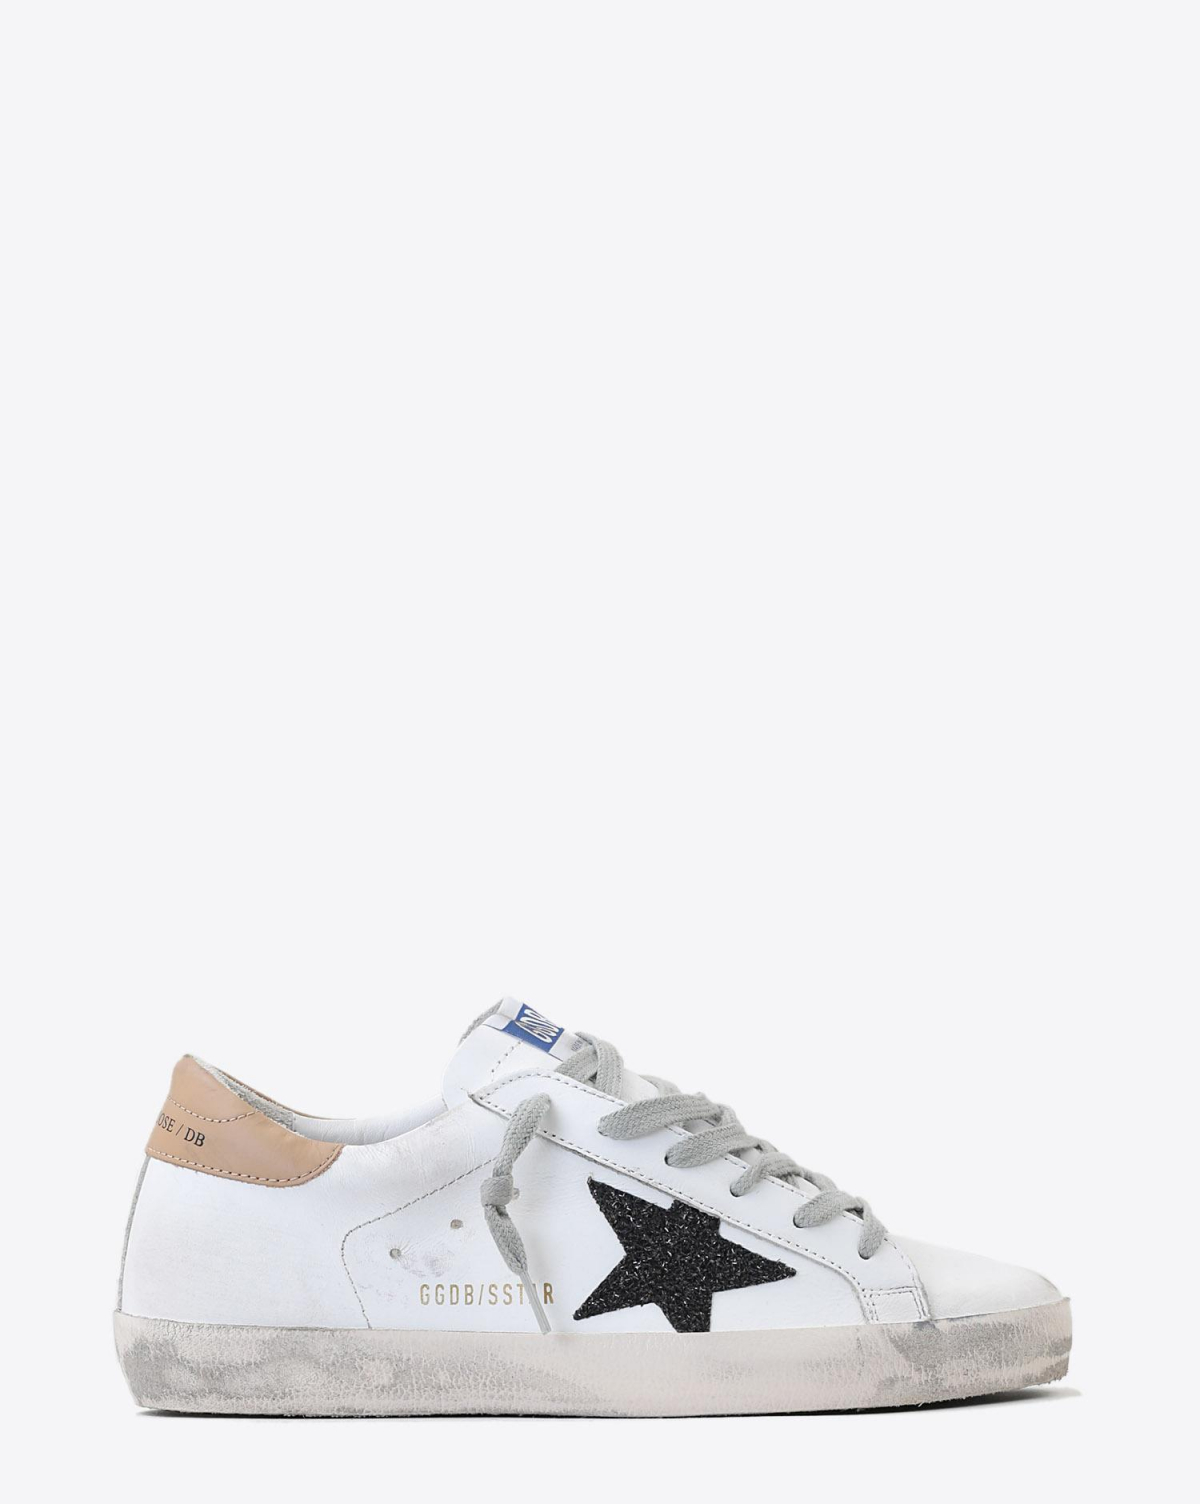 Golden Goose Woman Pré-Collection Sneakers Superstar - White Sand - Black Glitter